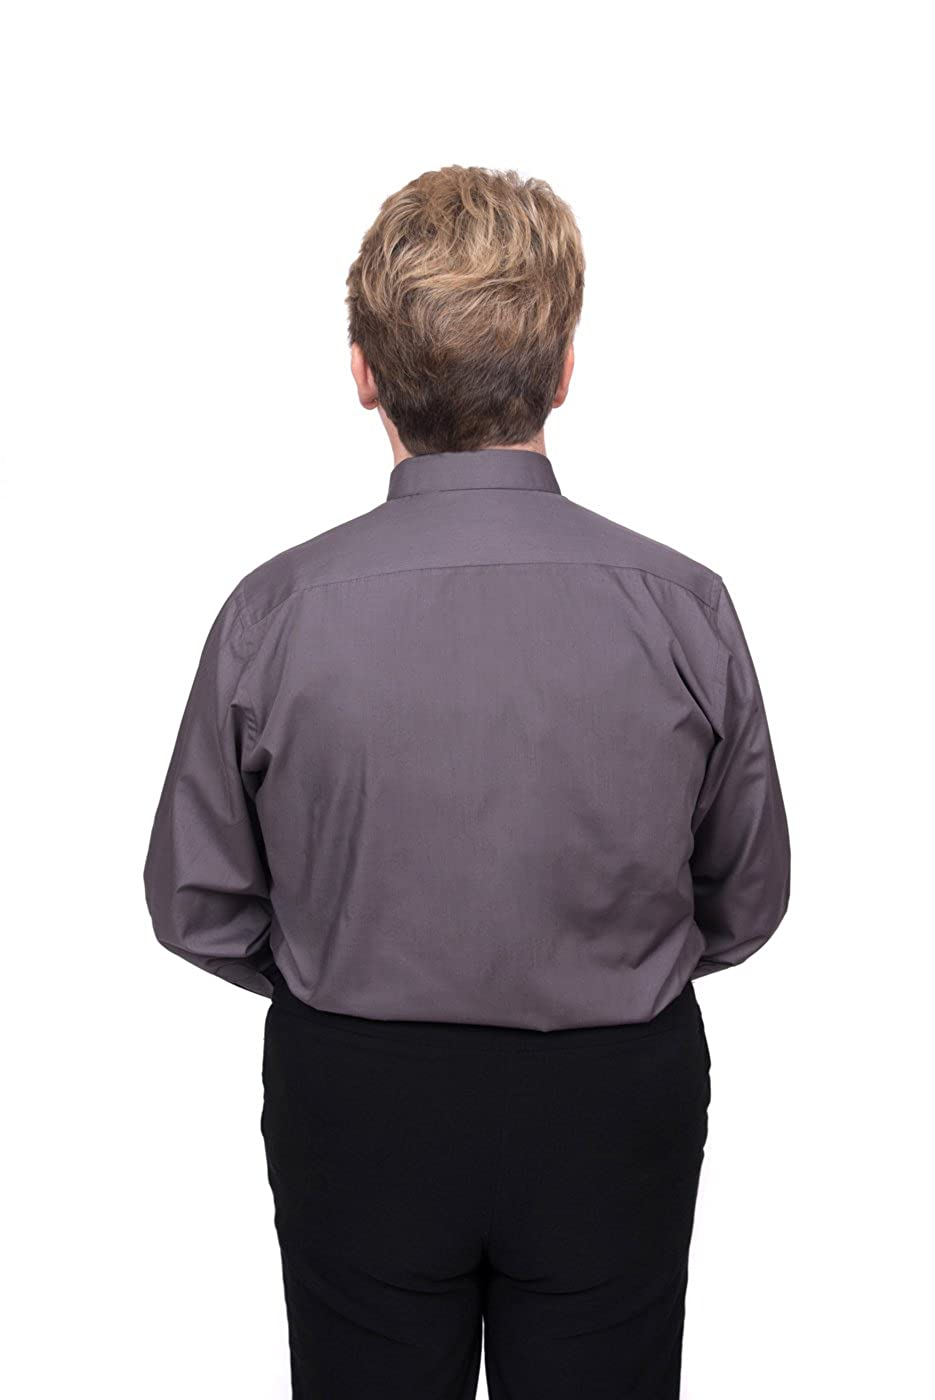 Clergy Shirts And Collars Stores Near Me Joe Maloy